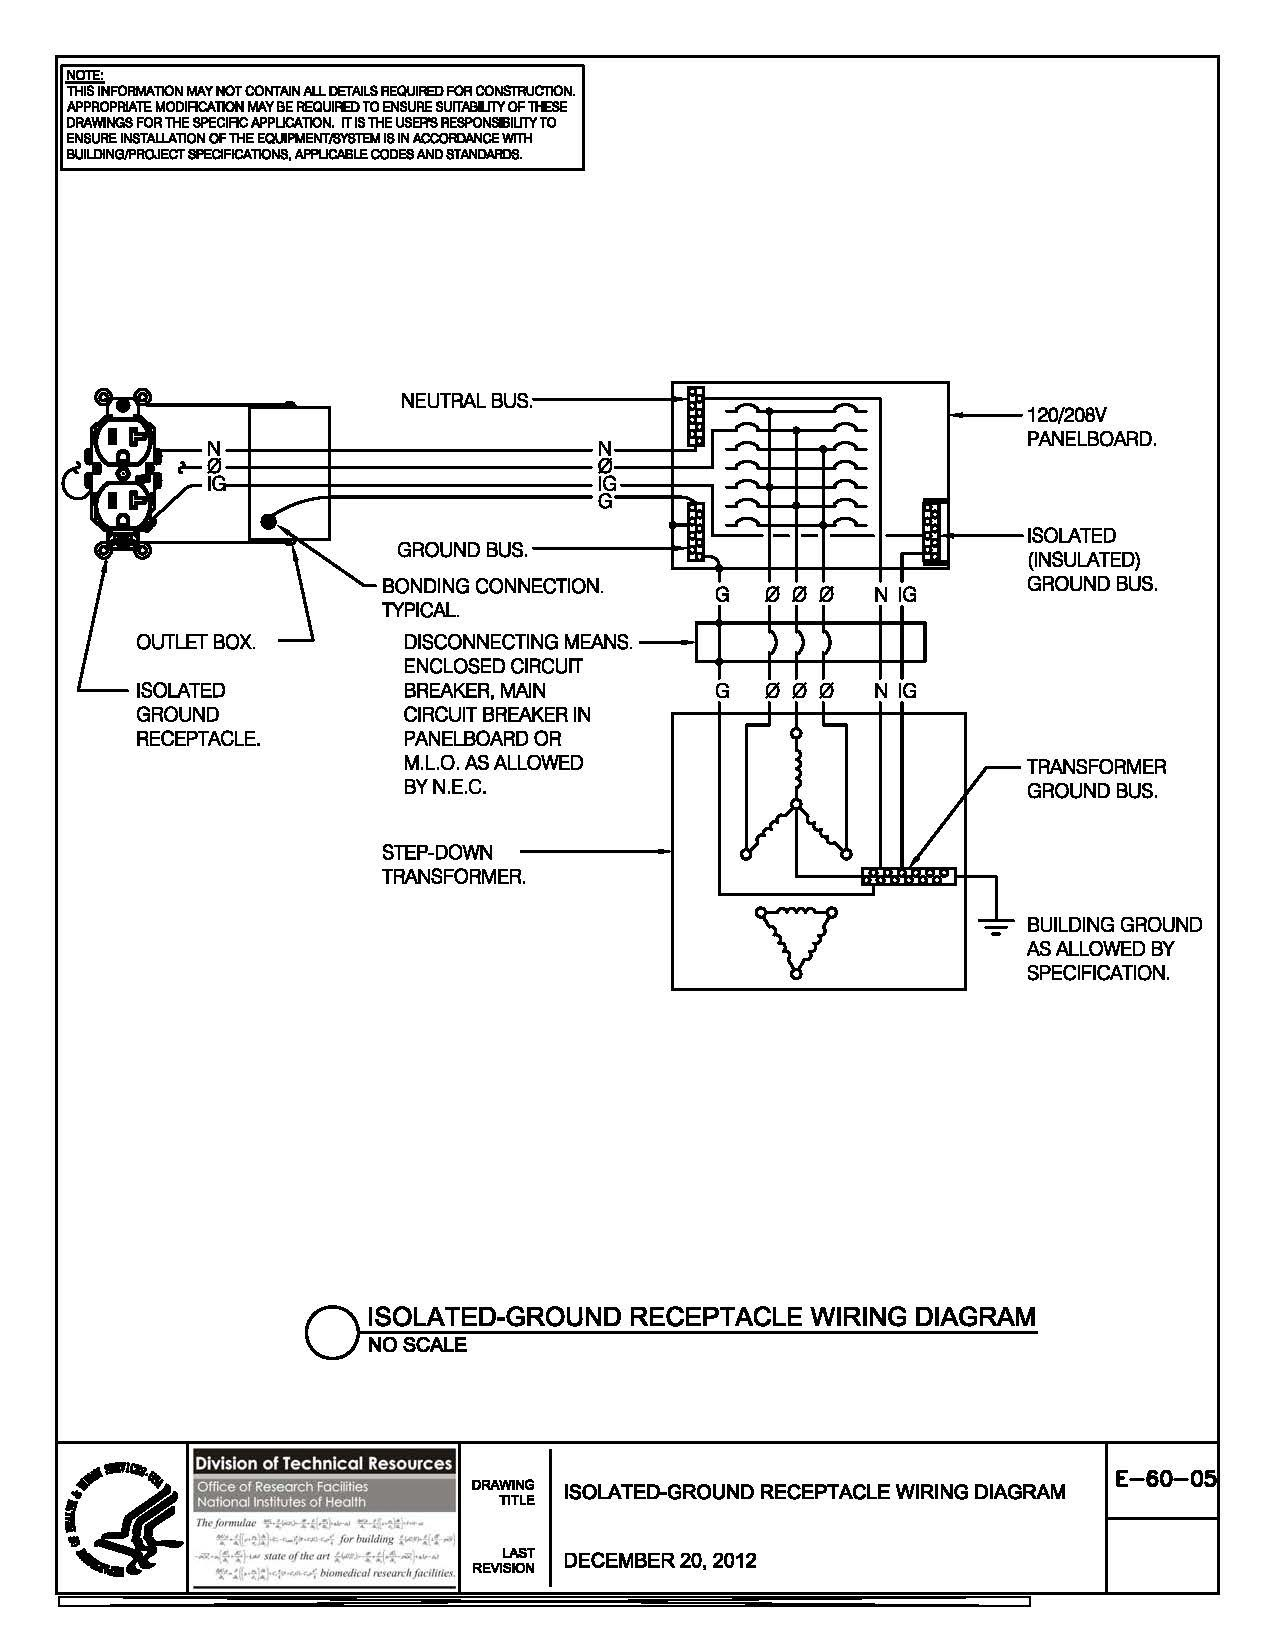 low voltage transformer wiring diagram Download-Broan Doorbell Wiring Diagram Best Typical Doorbell Wiring Diagram Save Low Voltage Transformer Wiring 4-b